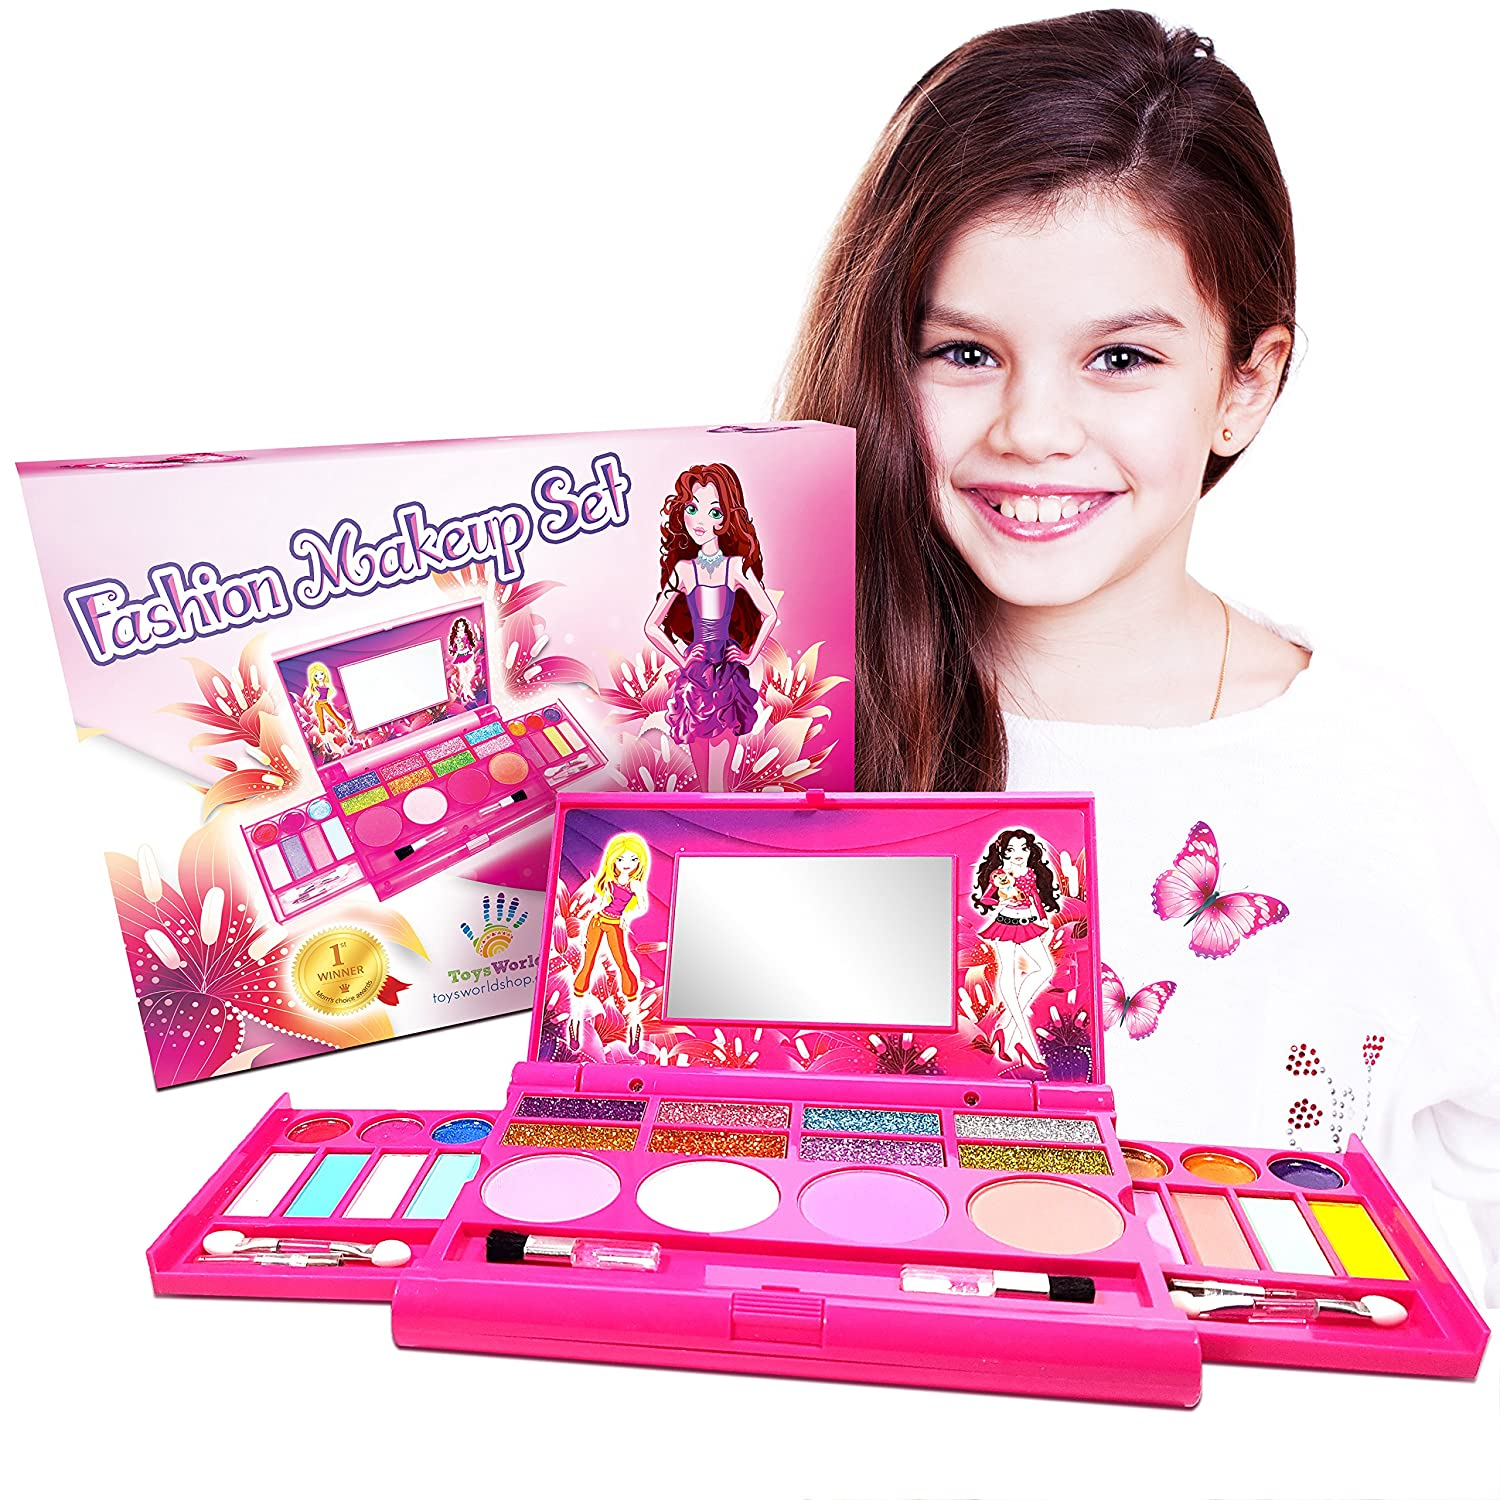 Makeup for Girls - Princess Fashion Girls Makeup Vanity Cosmetics Set - Washable Real Girl Makeup Kit - Deluxe Cosmetic Palette with Mirror for Girls - Beauty Cosmetics Girl Fashion Kit - NON TOXIC